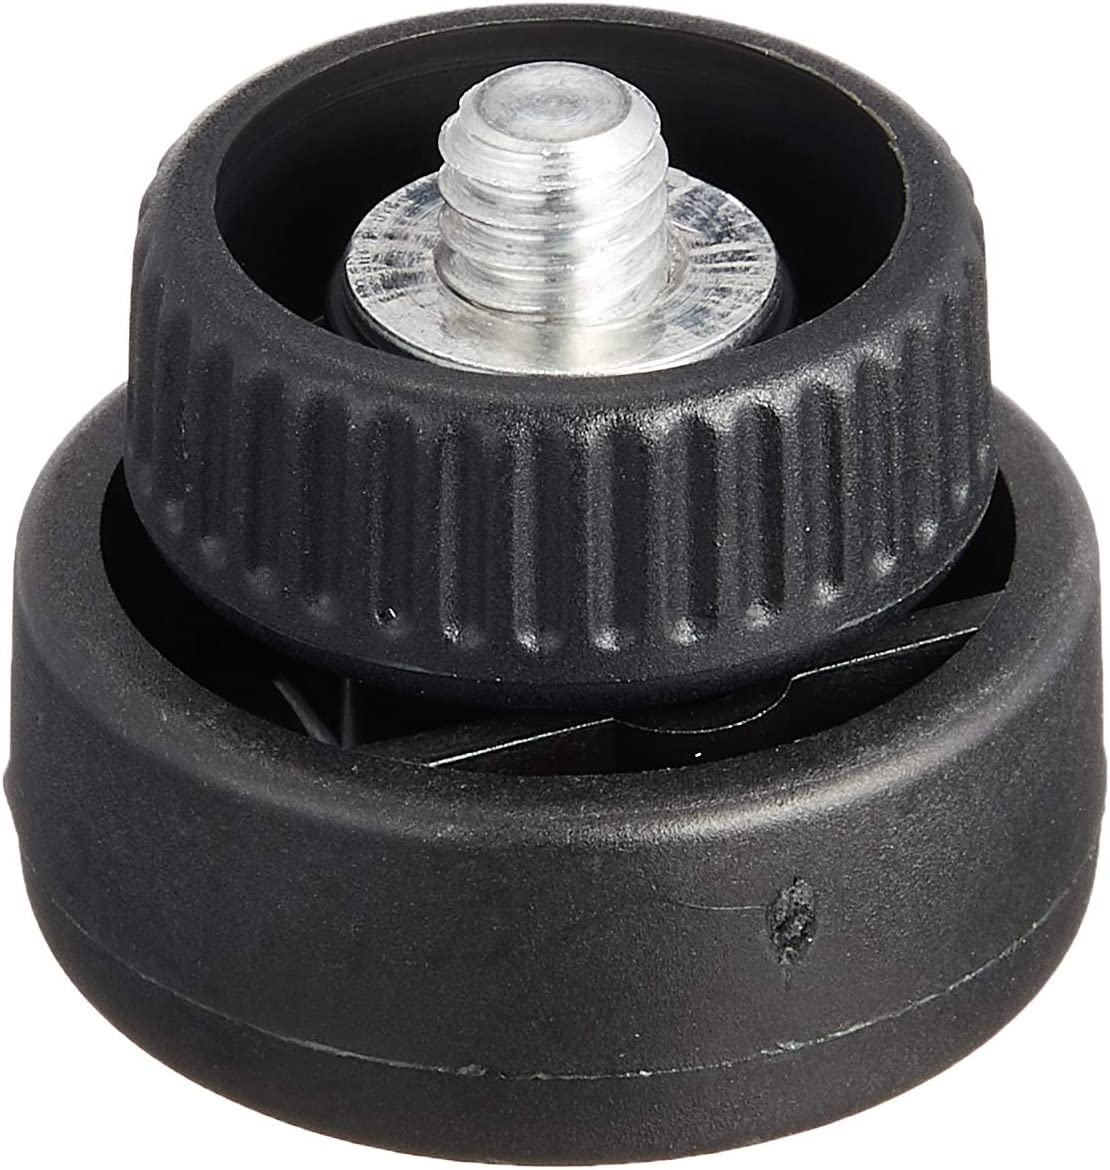 Replaces 2932,Black Manfrotto 143S Flash Shoe for Magic Arm